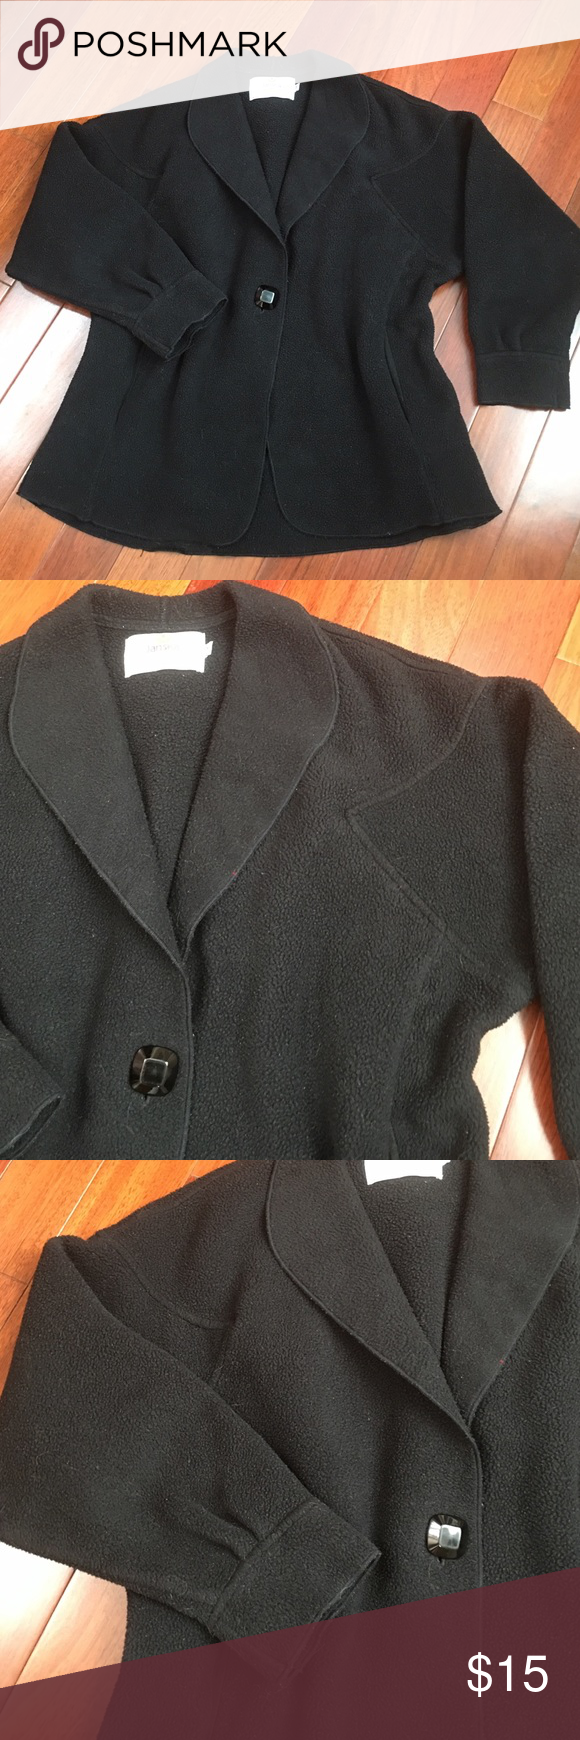 Janska fleece cozy jacket arm pits conditioner and front button